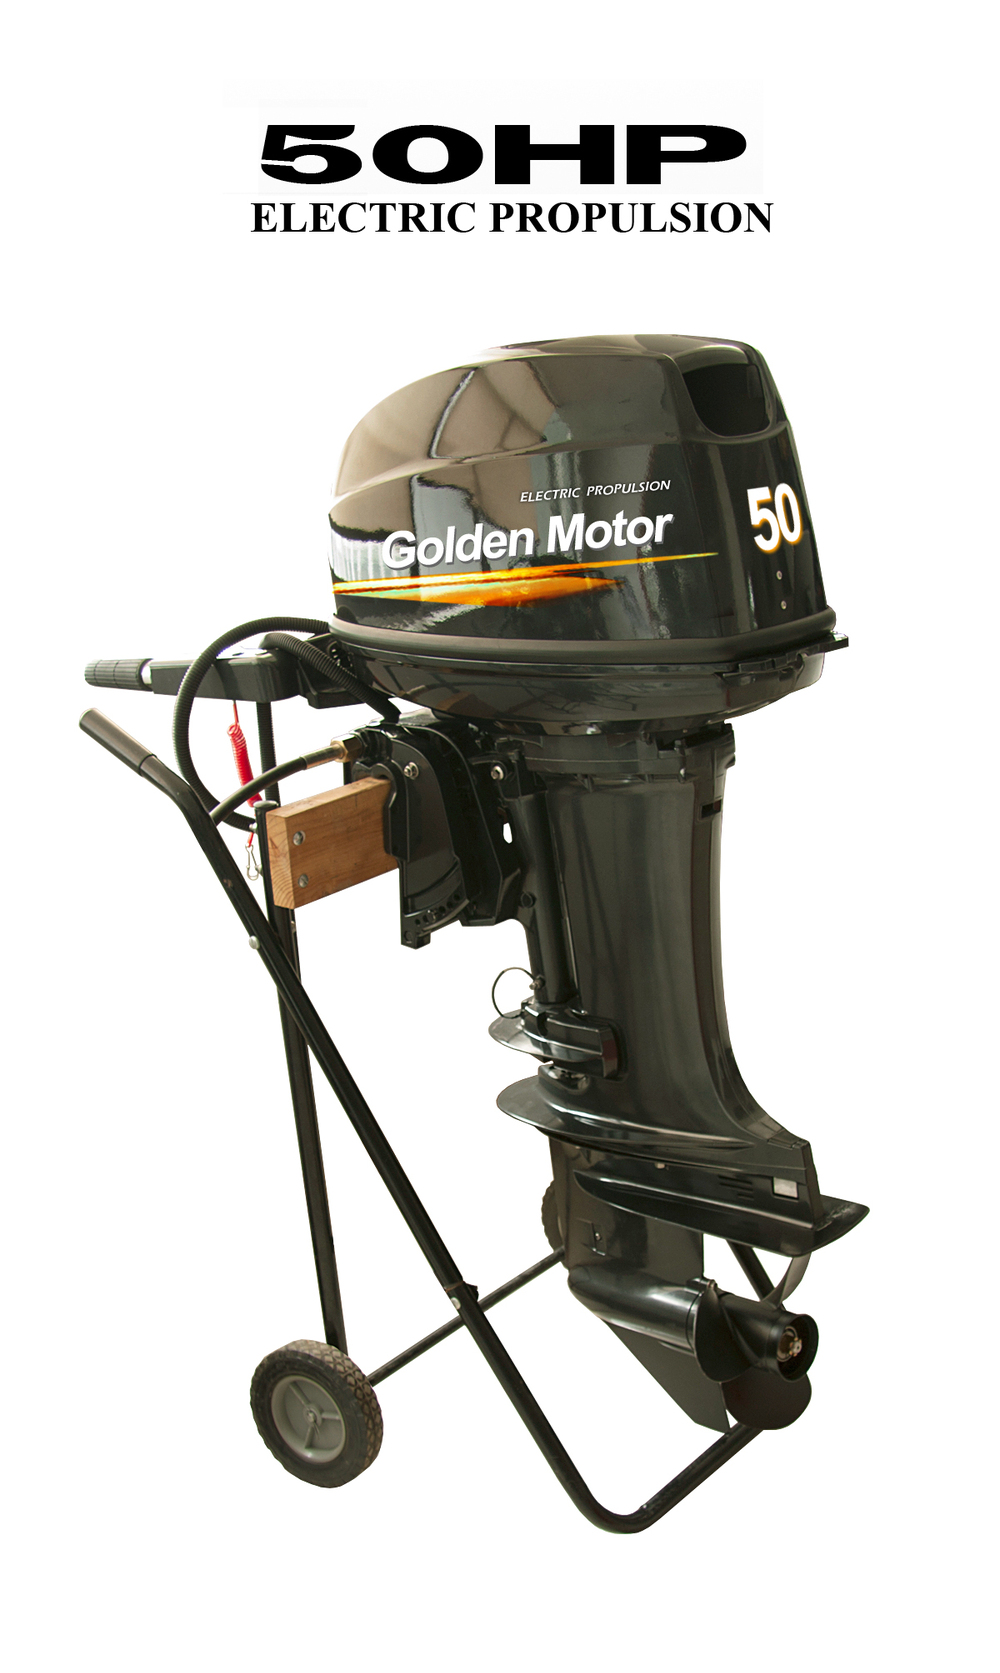 3hp 6hp 10hp 15hp 20hp 50hp Electric Propulsion Outboard